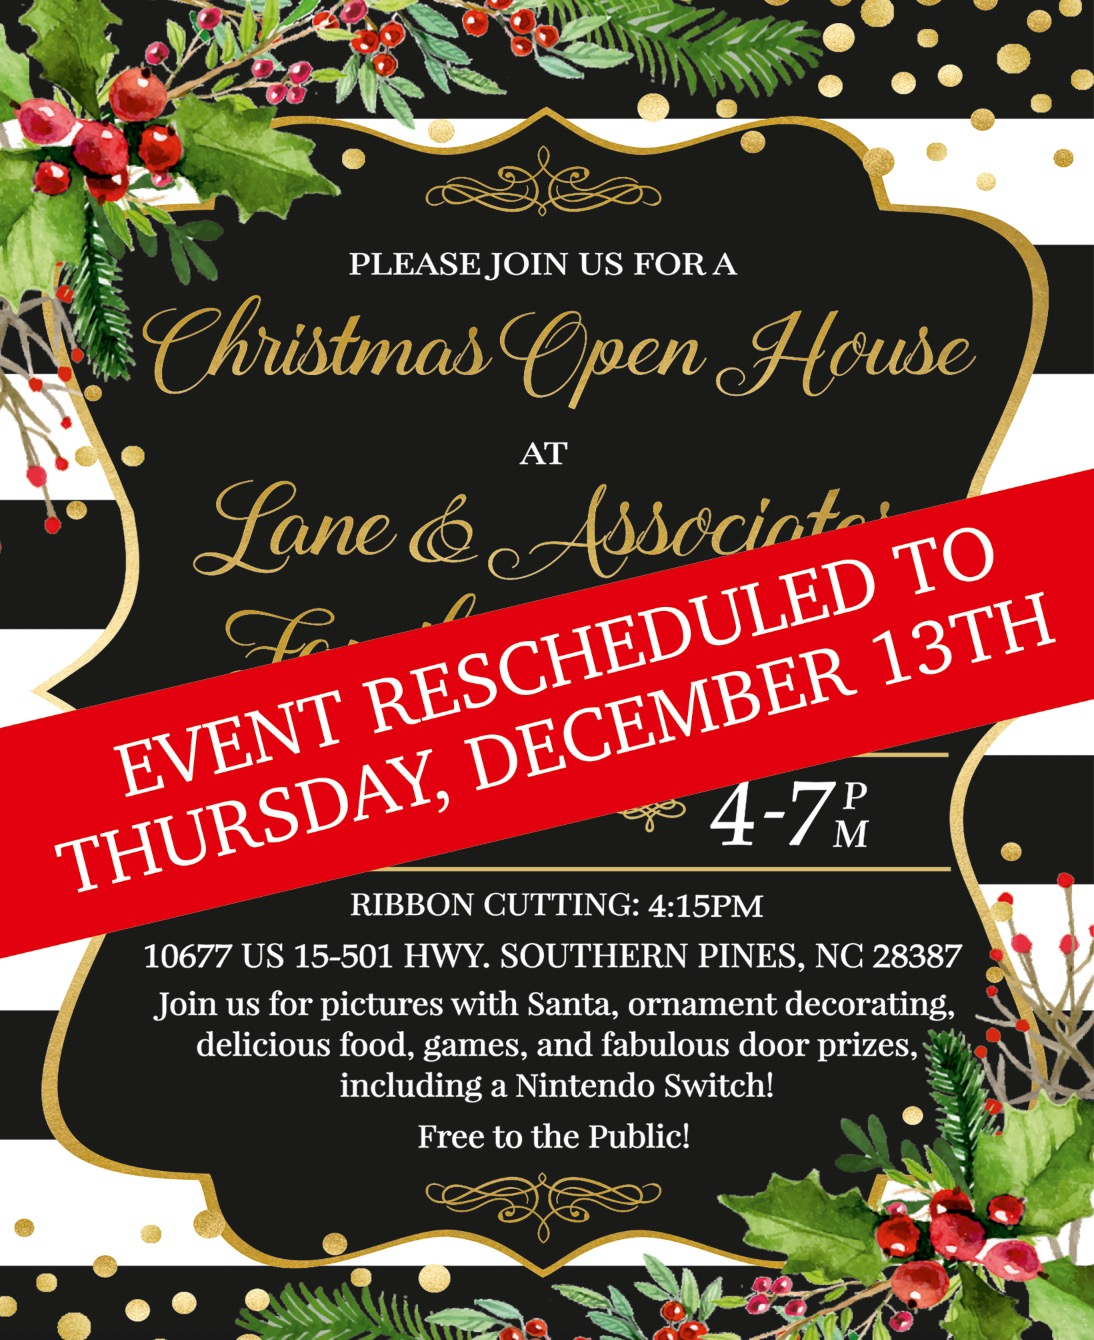 Invitation to come to our Christmas Southern Pines Open House with red rescheduled sign